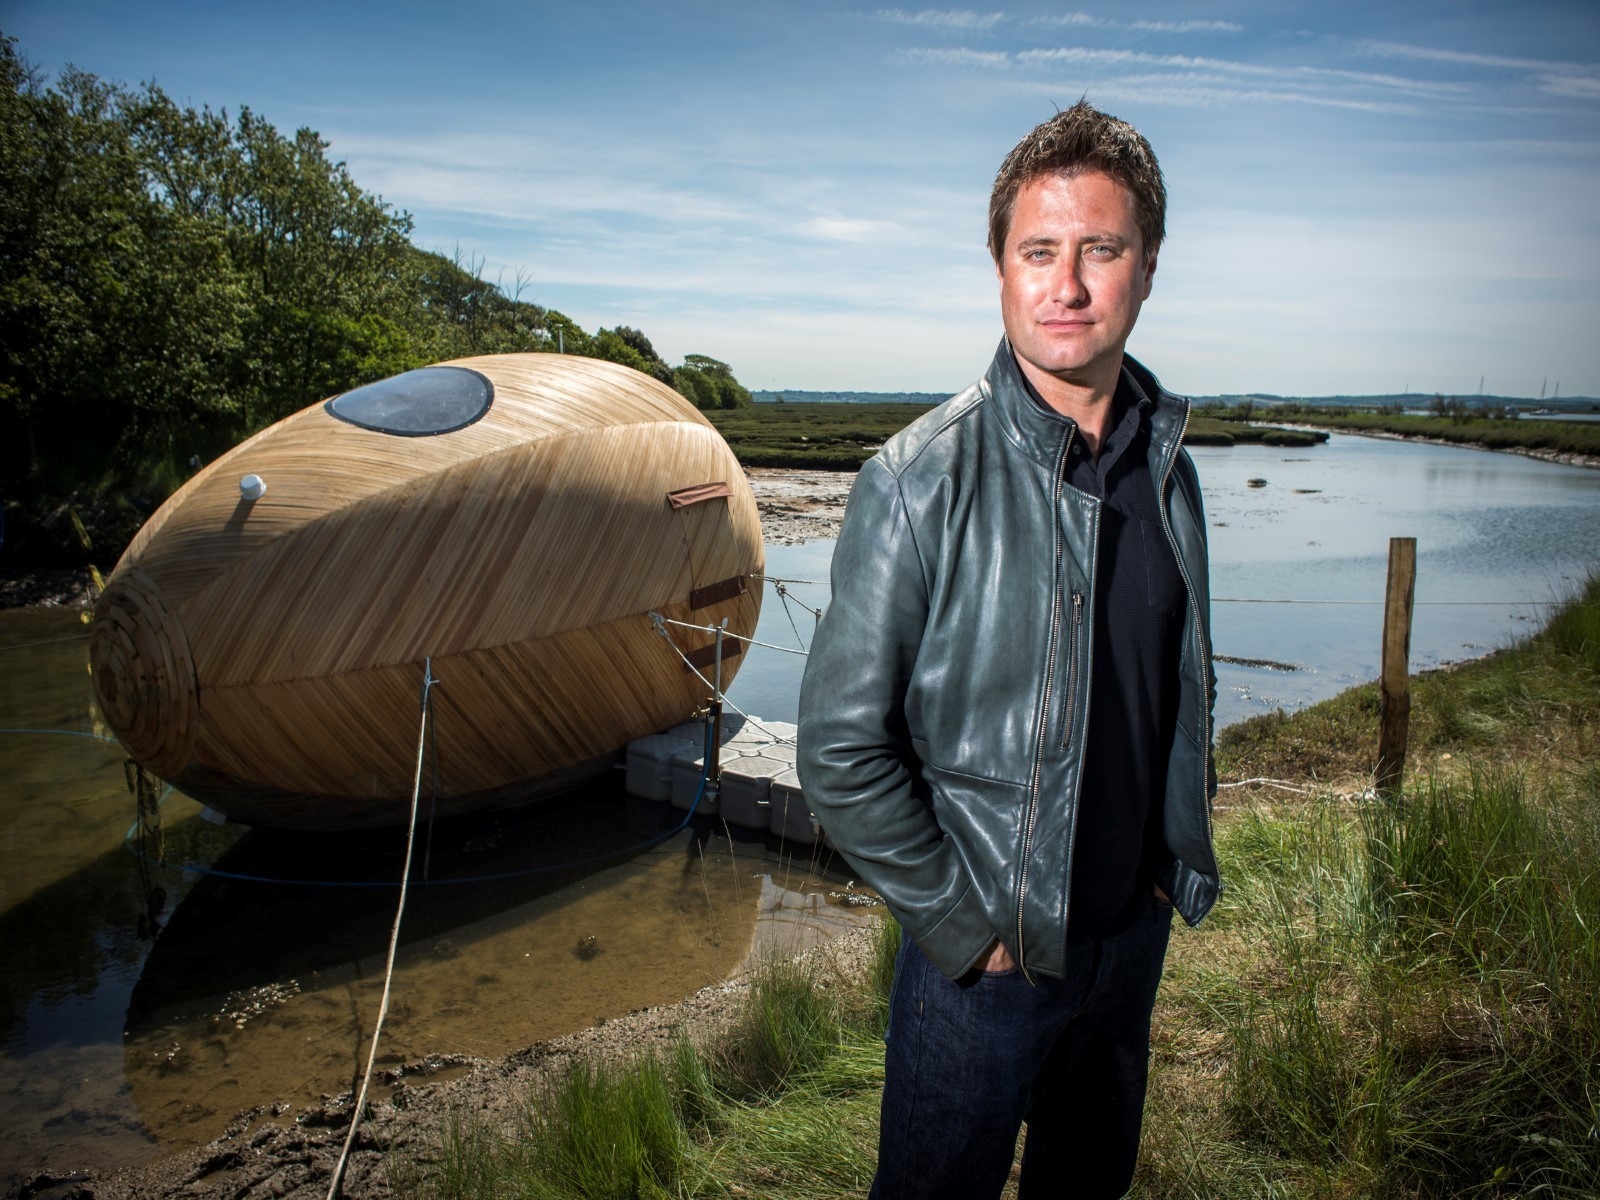 George clarke gives his renovation tips for small spaces aol money uk - Small spaces george clarke pict ...